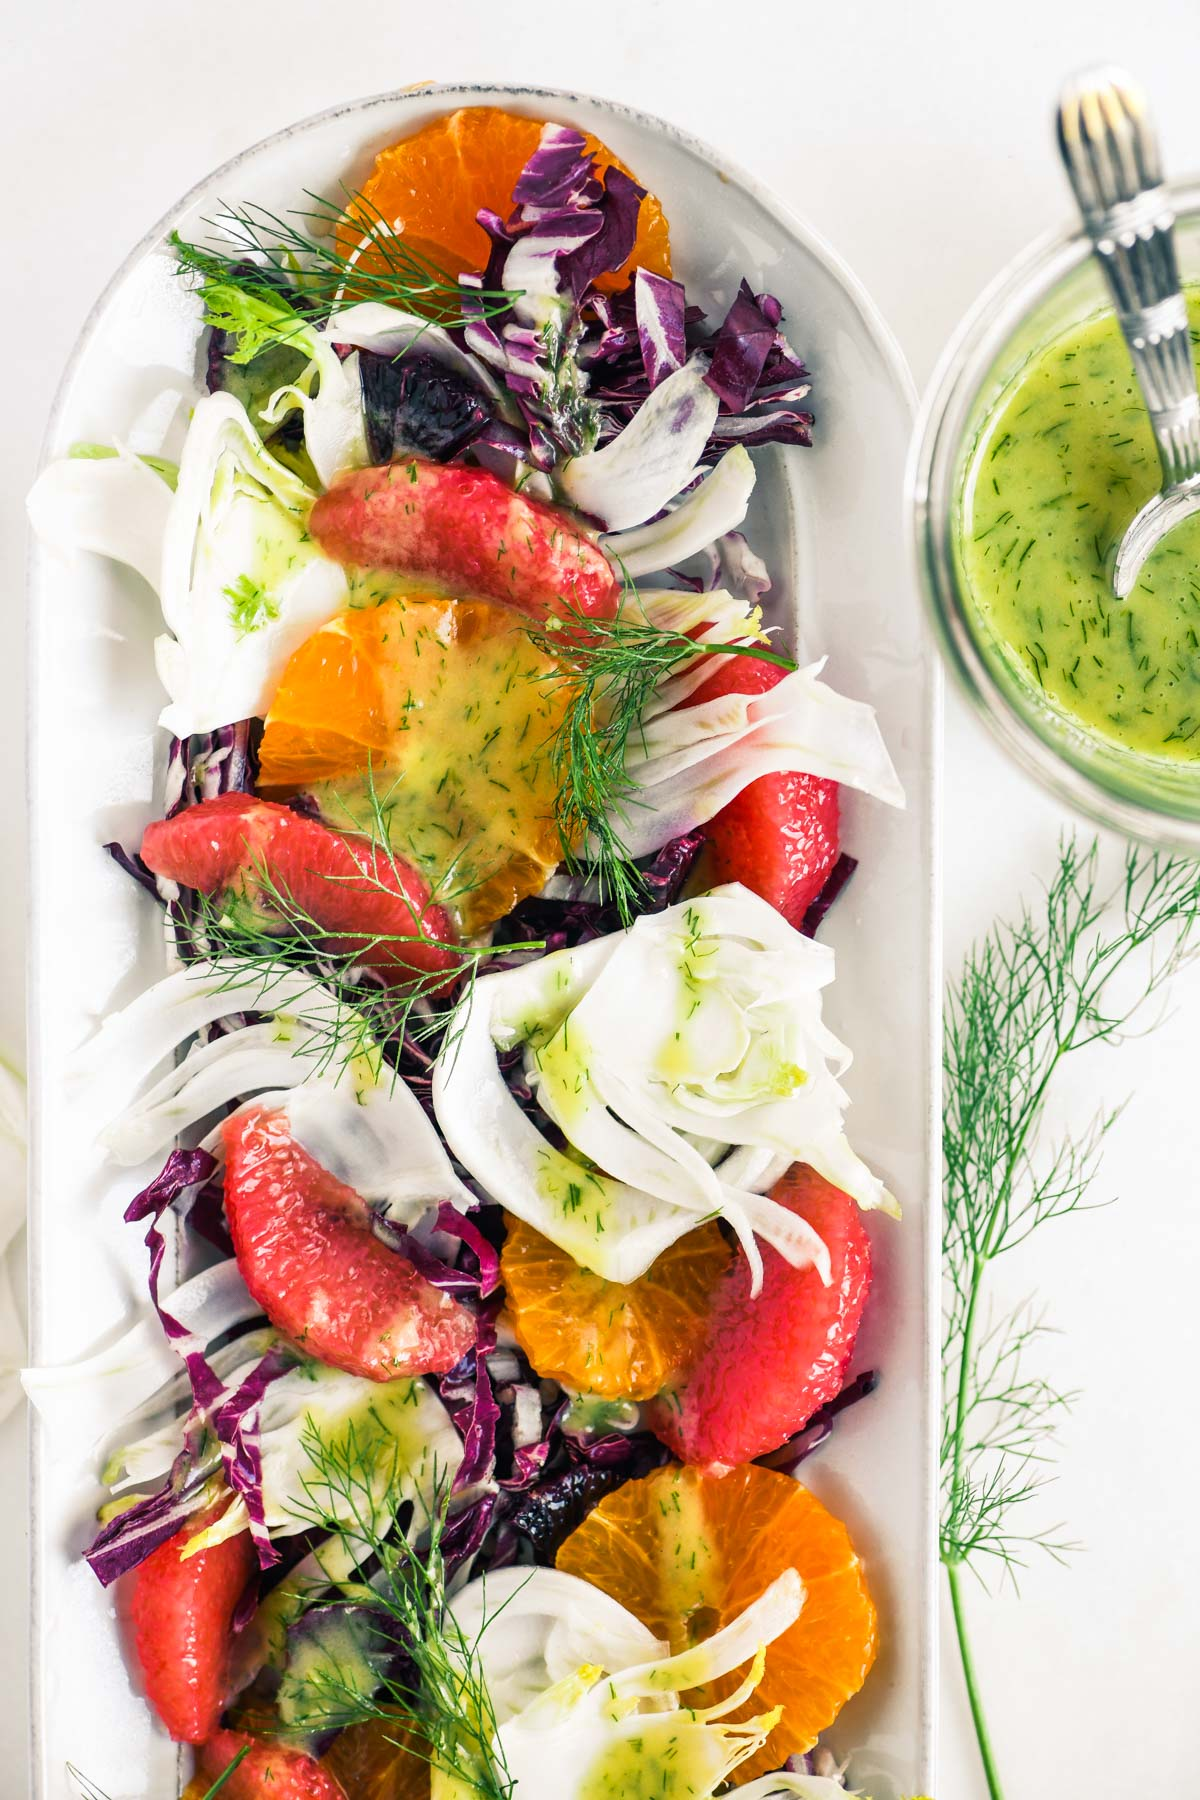 a fennel, radicchio and citrus salad on an oval plate